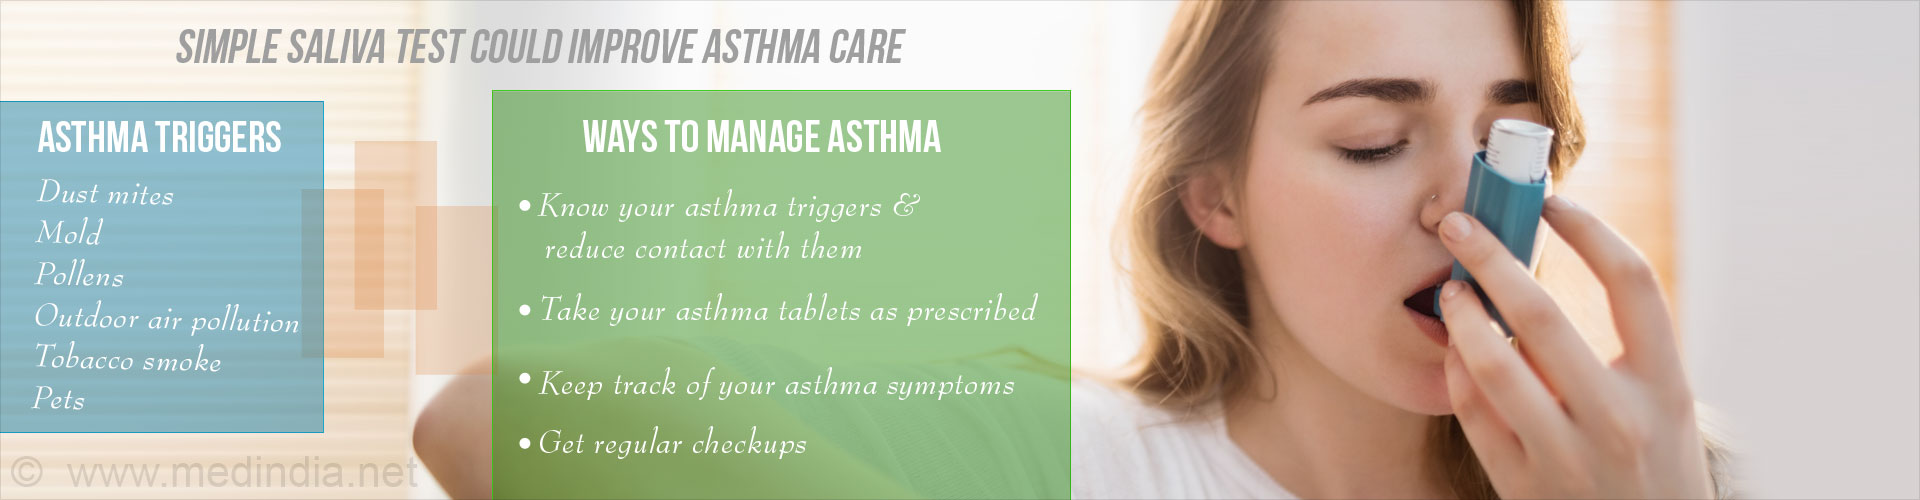 Simple Saliva Test To Diagnose Asthma